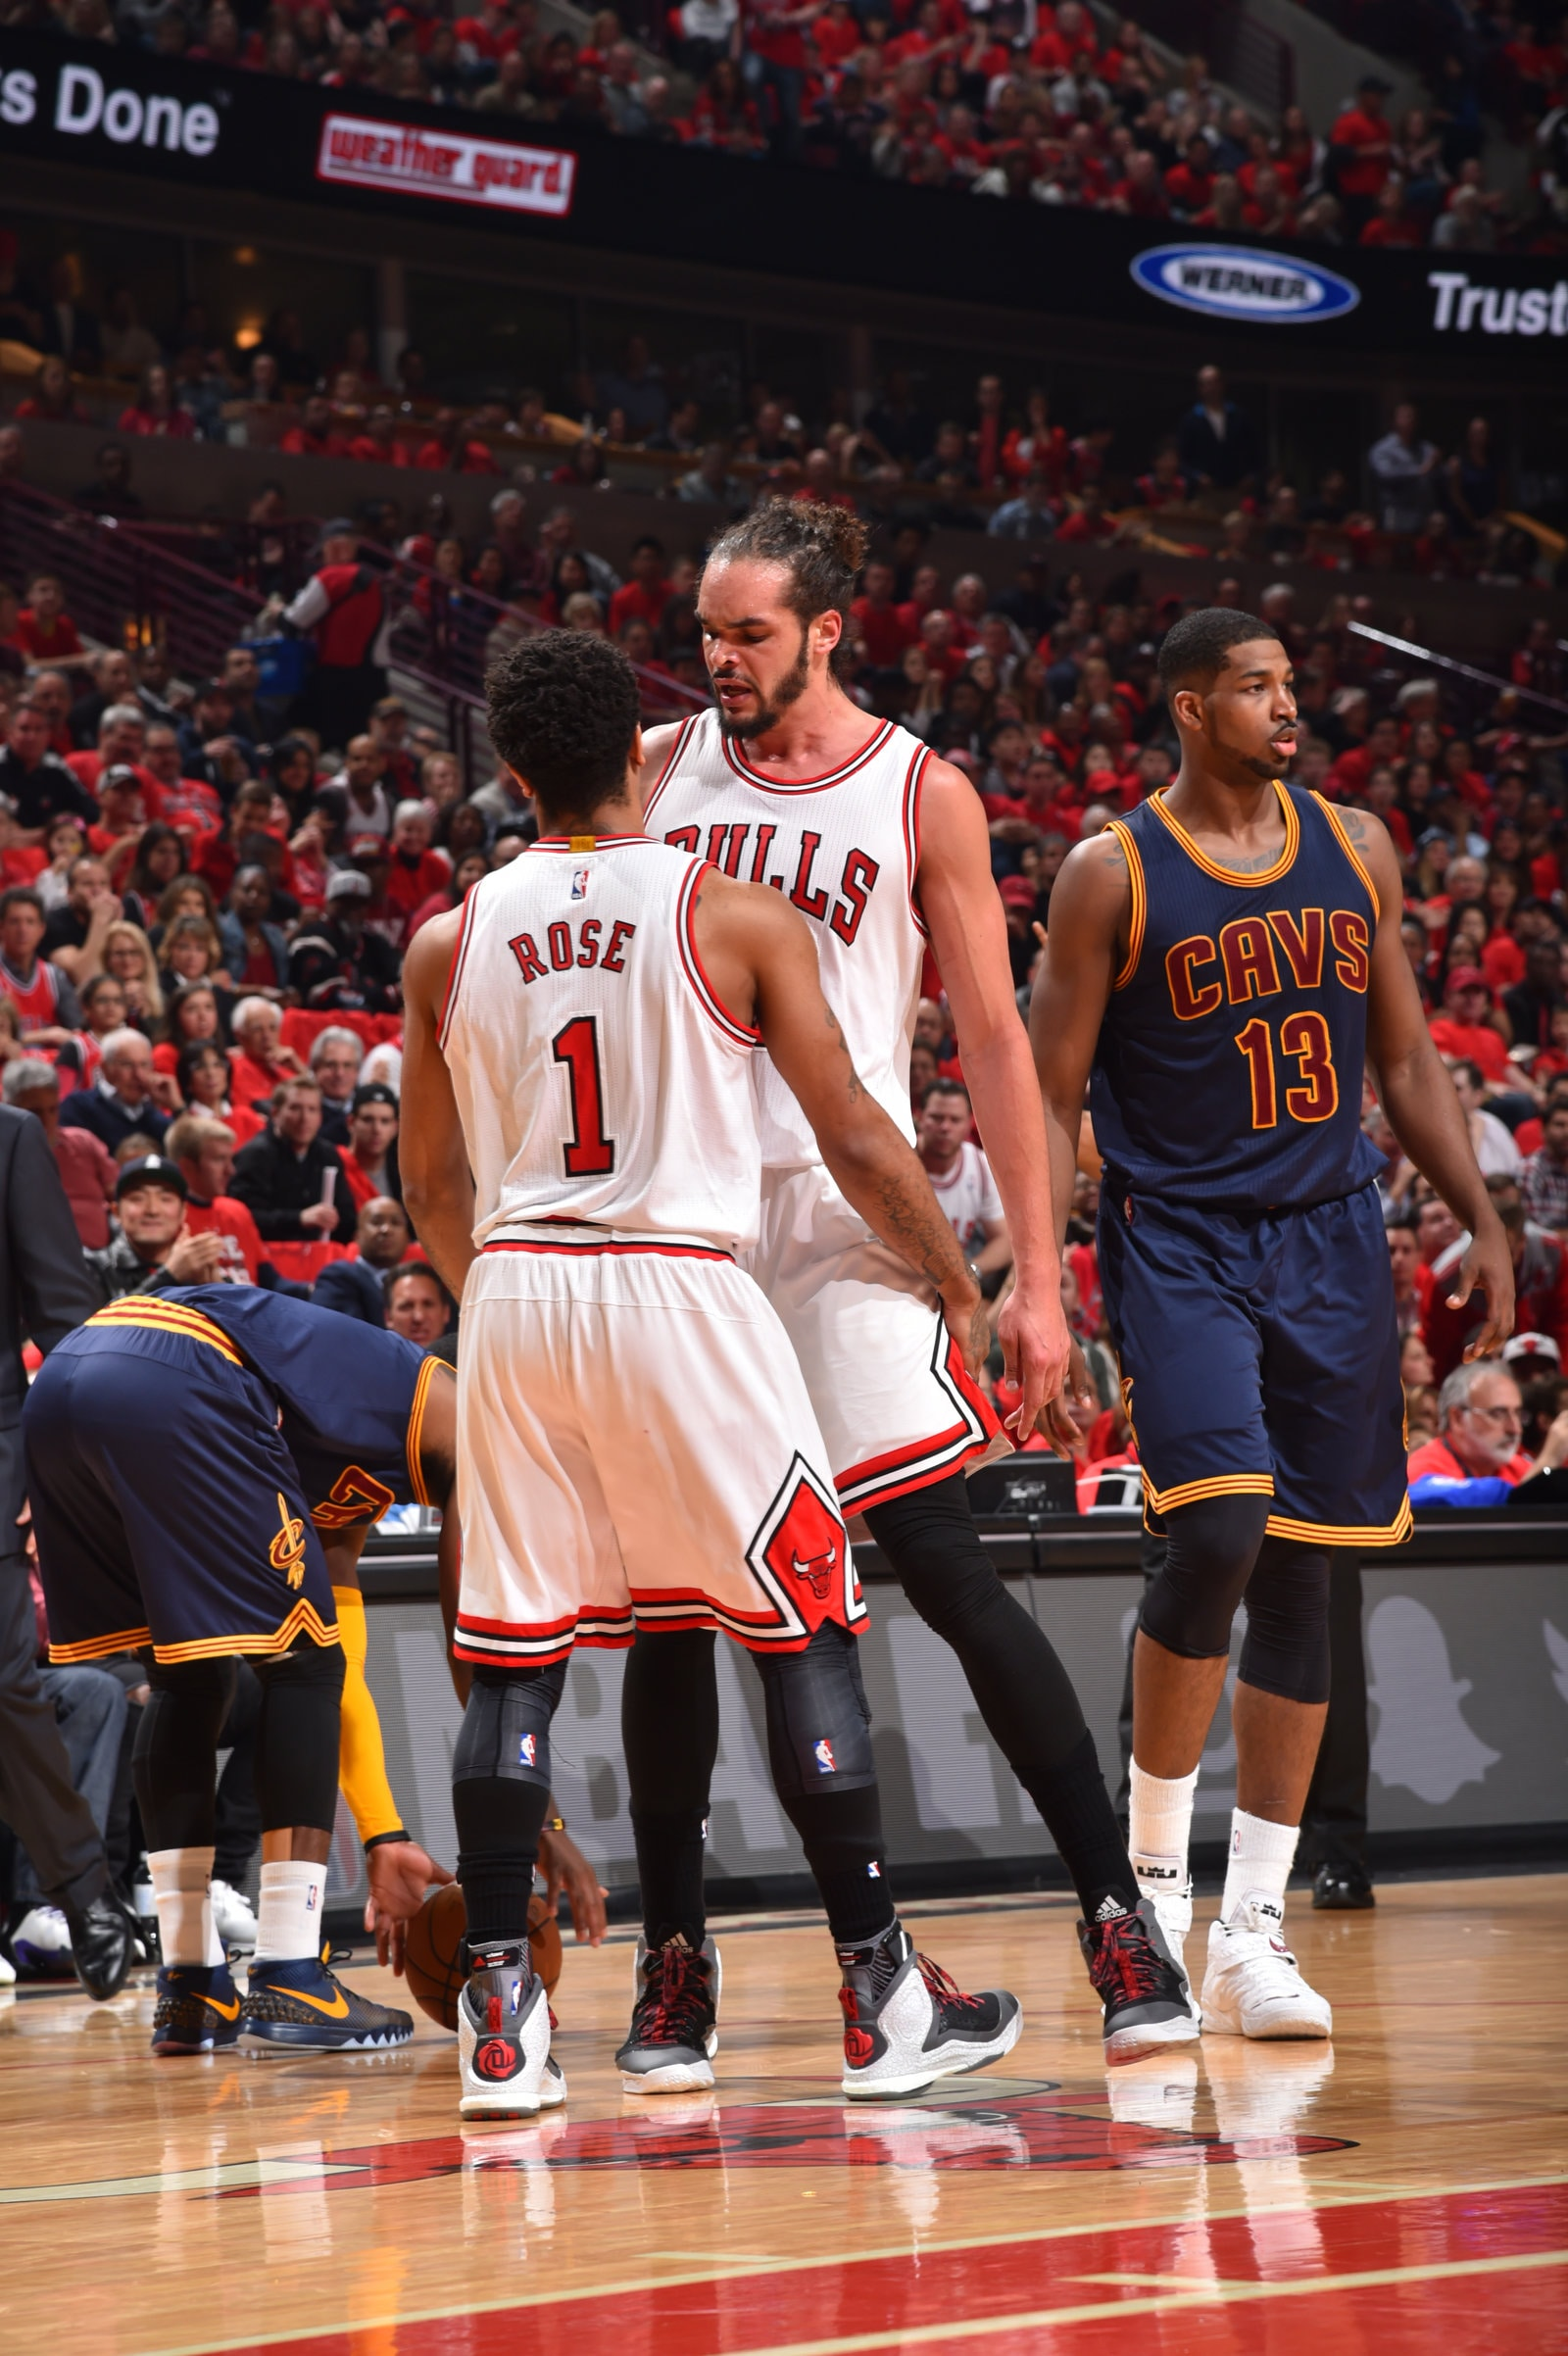 b139c9ce8bd Derrick Rose and Joakim Noach check into game against Cavaliers.